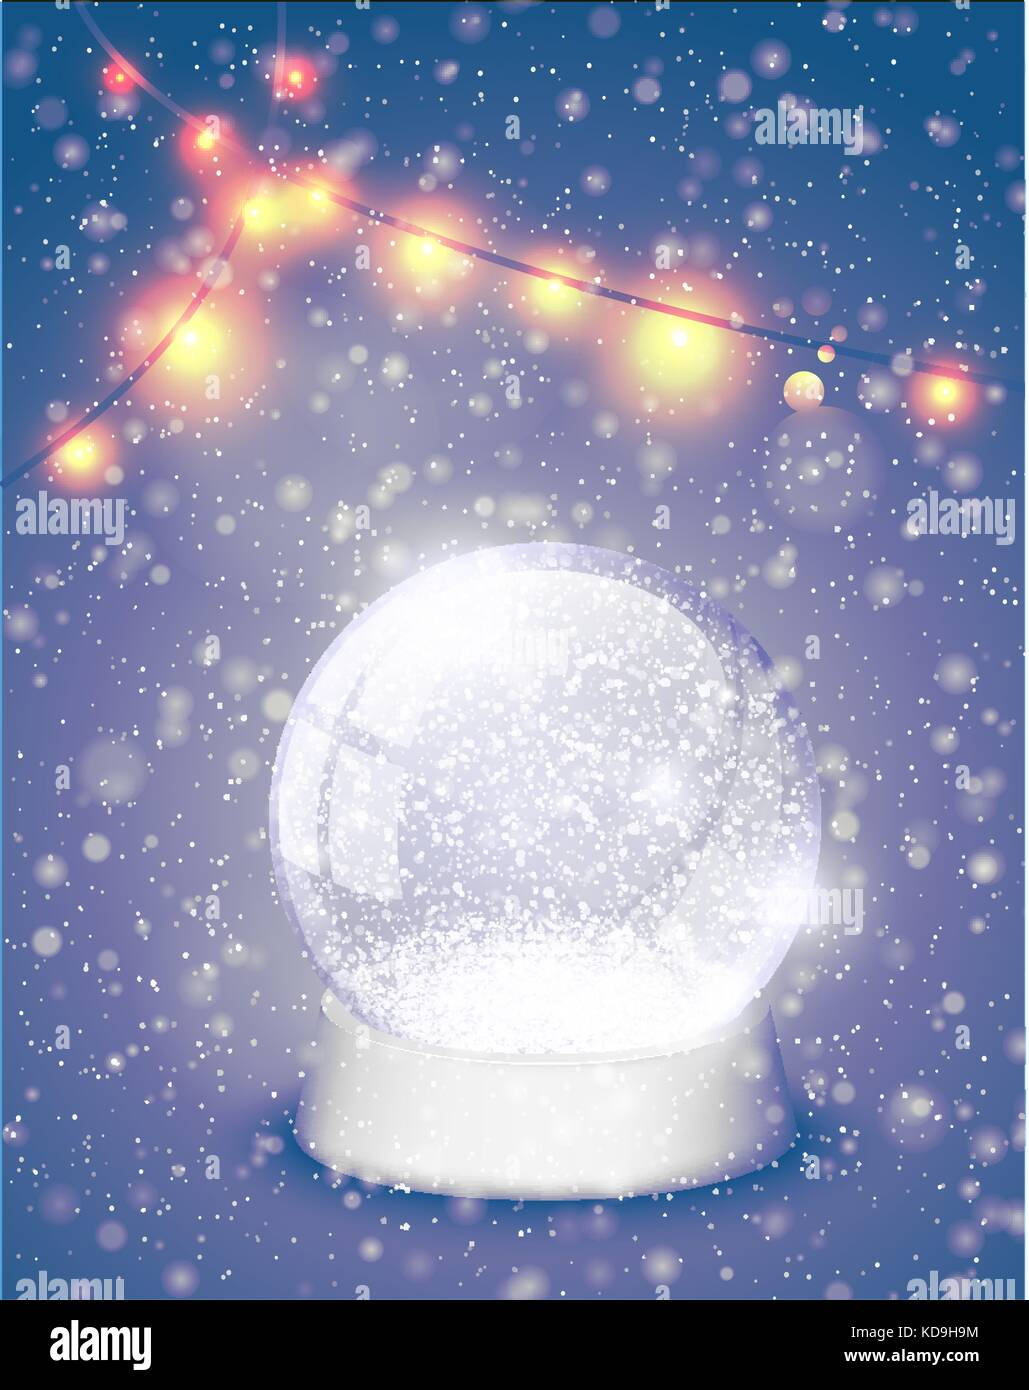 91321ede10ecb Snow globe Christmas magic ball with yellow lights background. Xmas  snowglobe greeting card vector illustration. Winter in glass ball